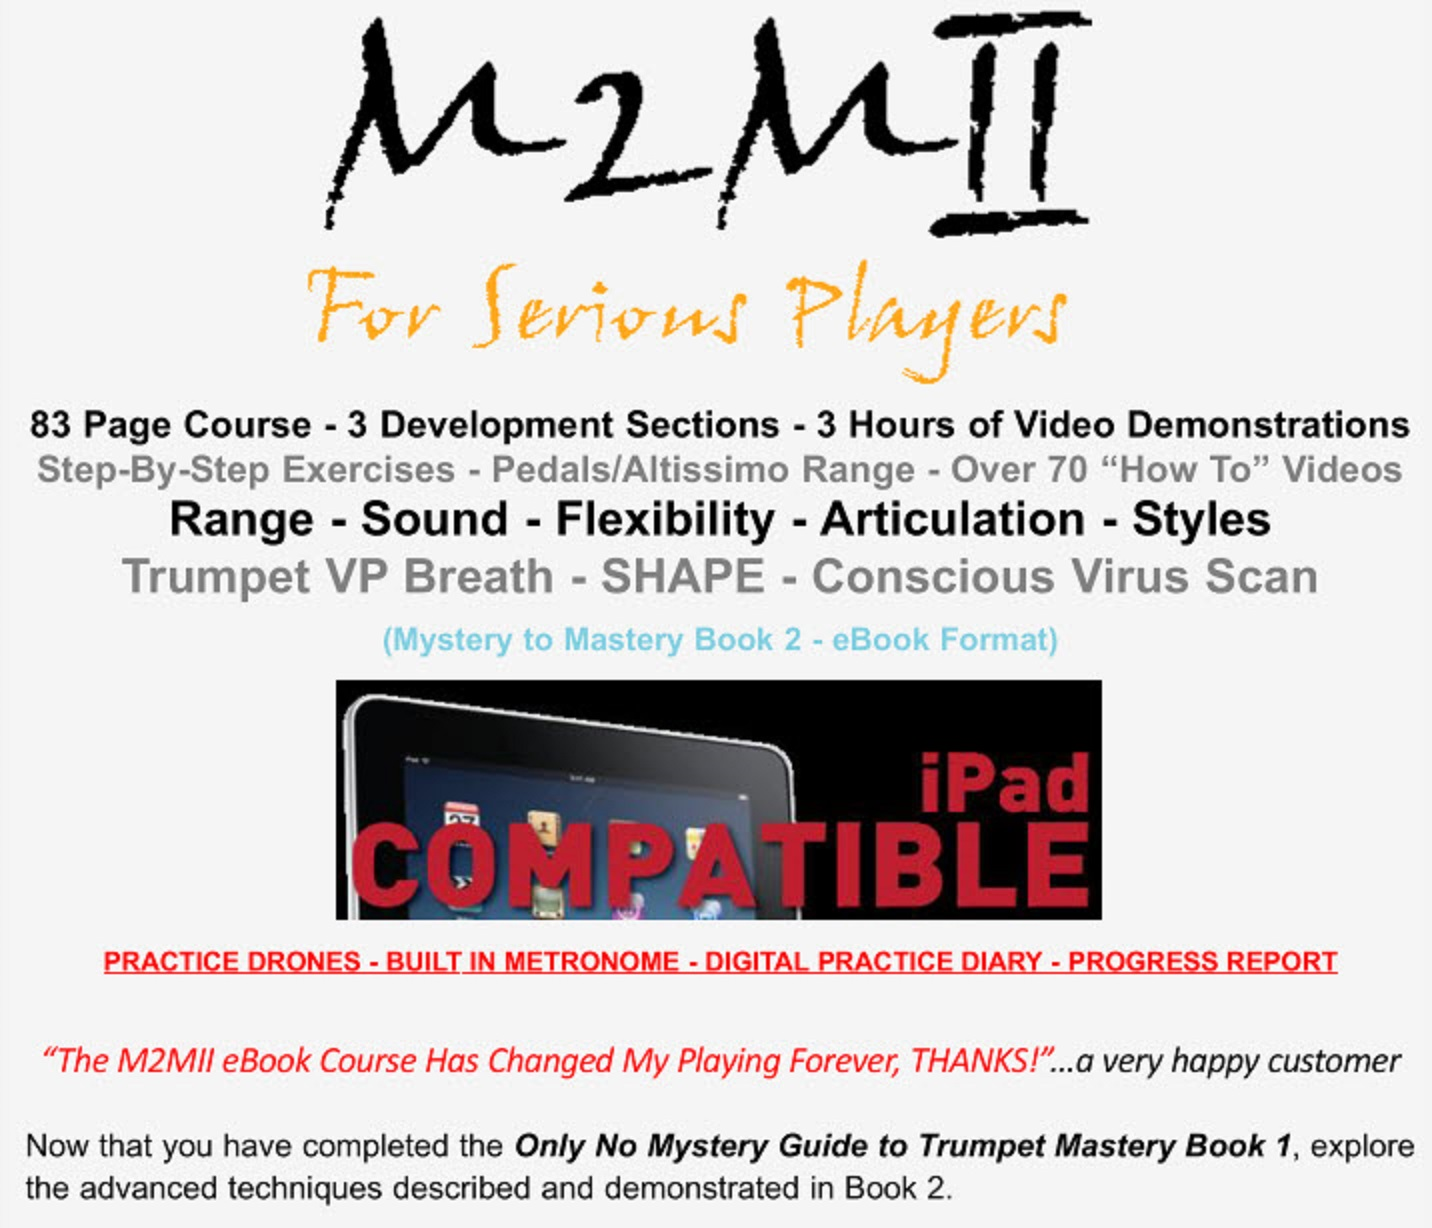 M2mii for serious players mystery to mastery online trumpet lessons welcome to a whole new world of trumpet education fandeluxe Choice Image